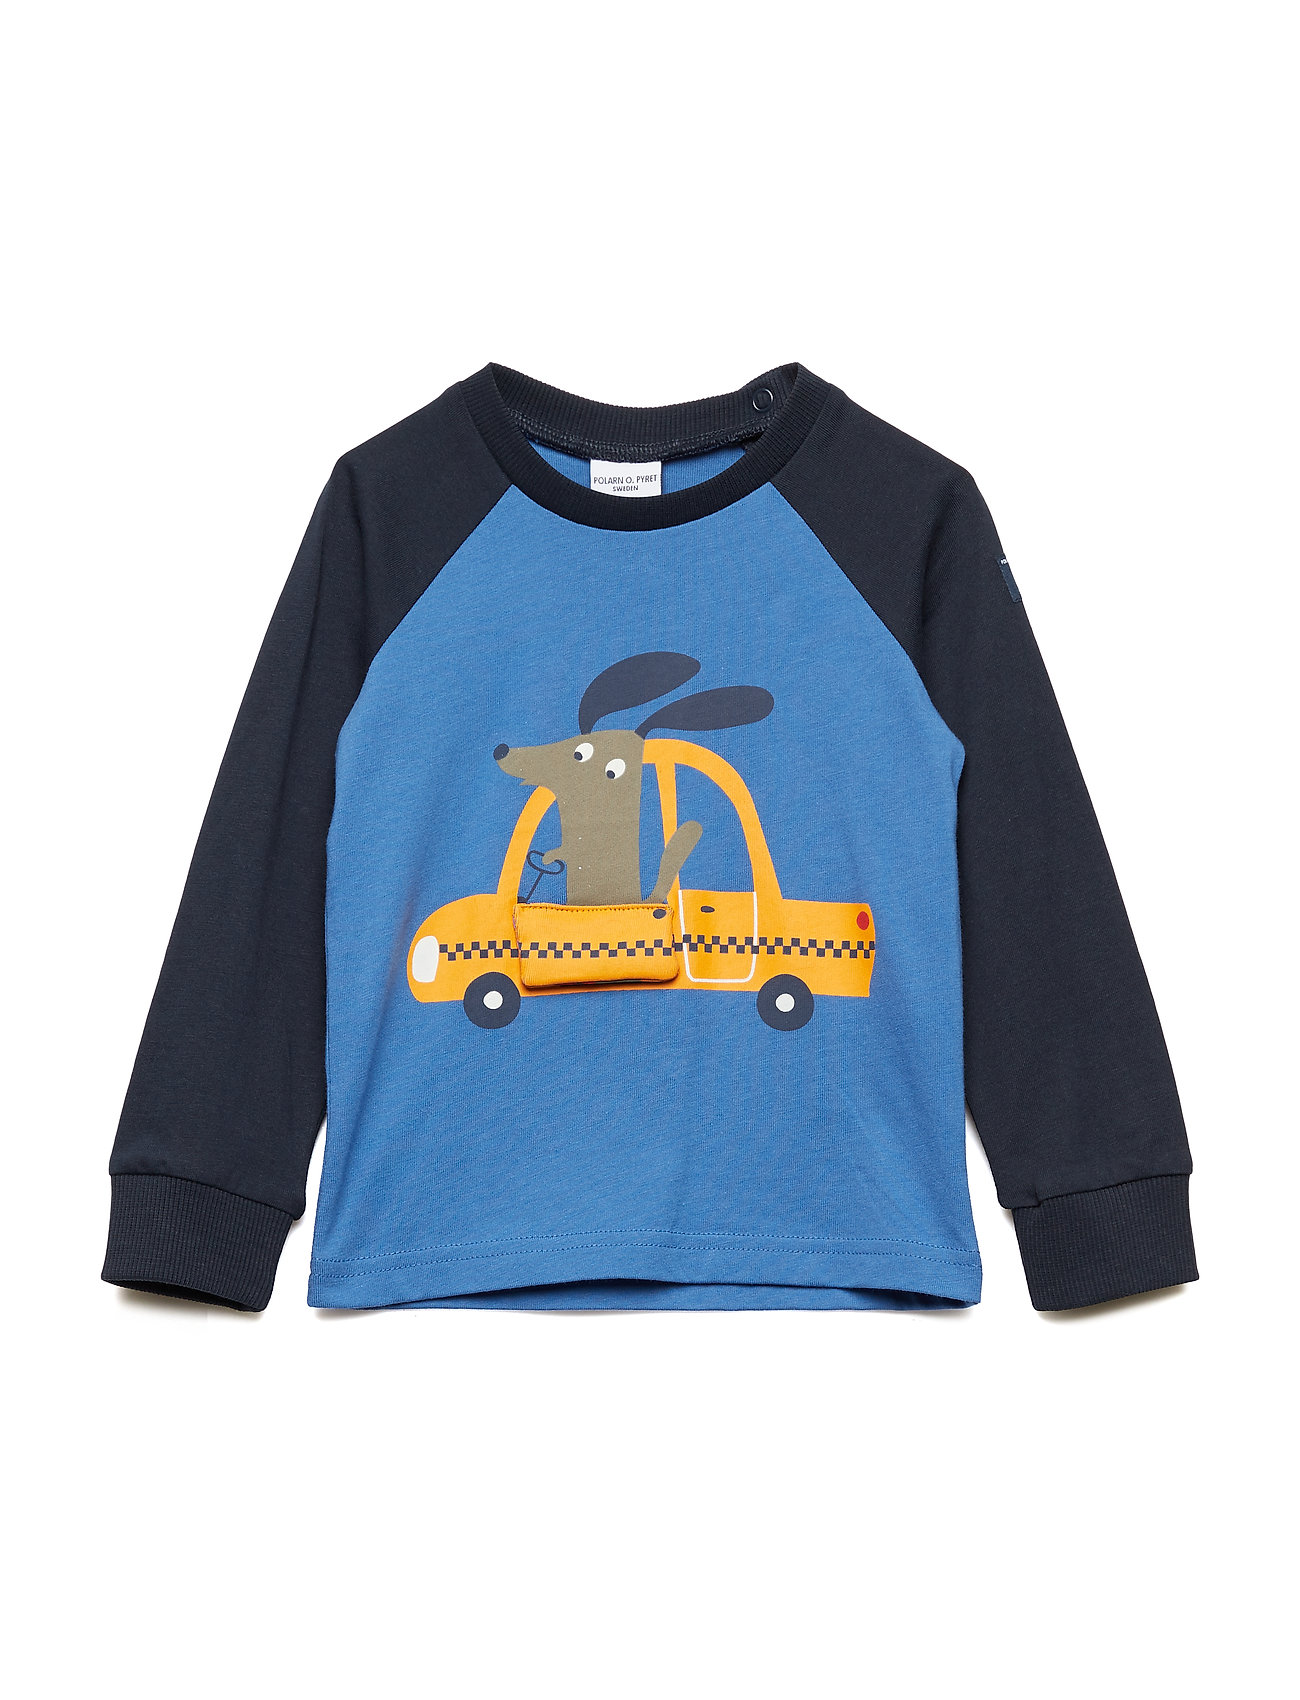 Polarn O. Pyret T-shirt Long Sleeve applique  Preschool